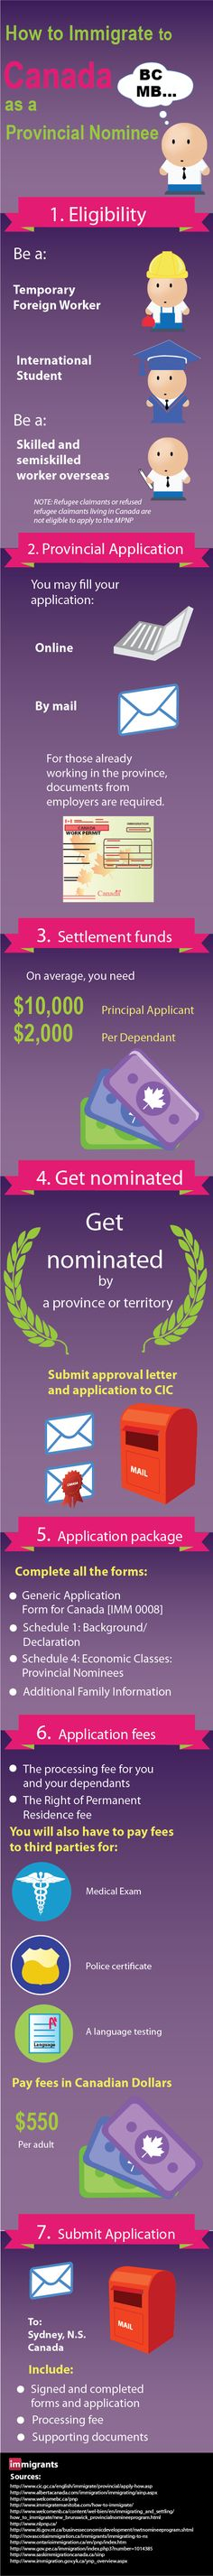 Find out how to immigrate to Canada as a Provincial Nominee